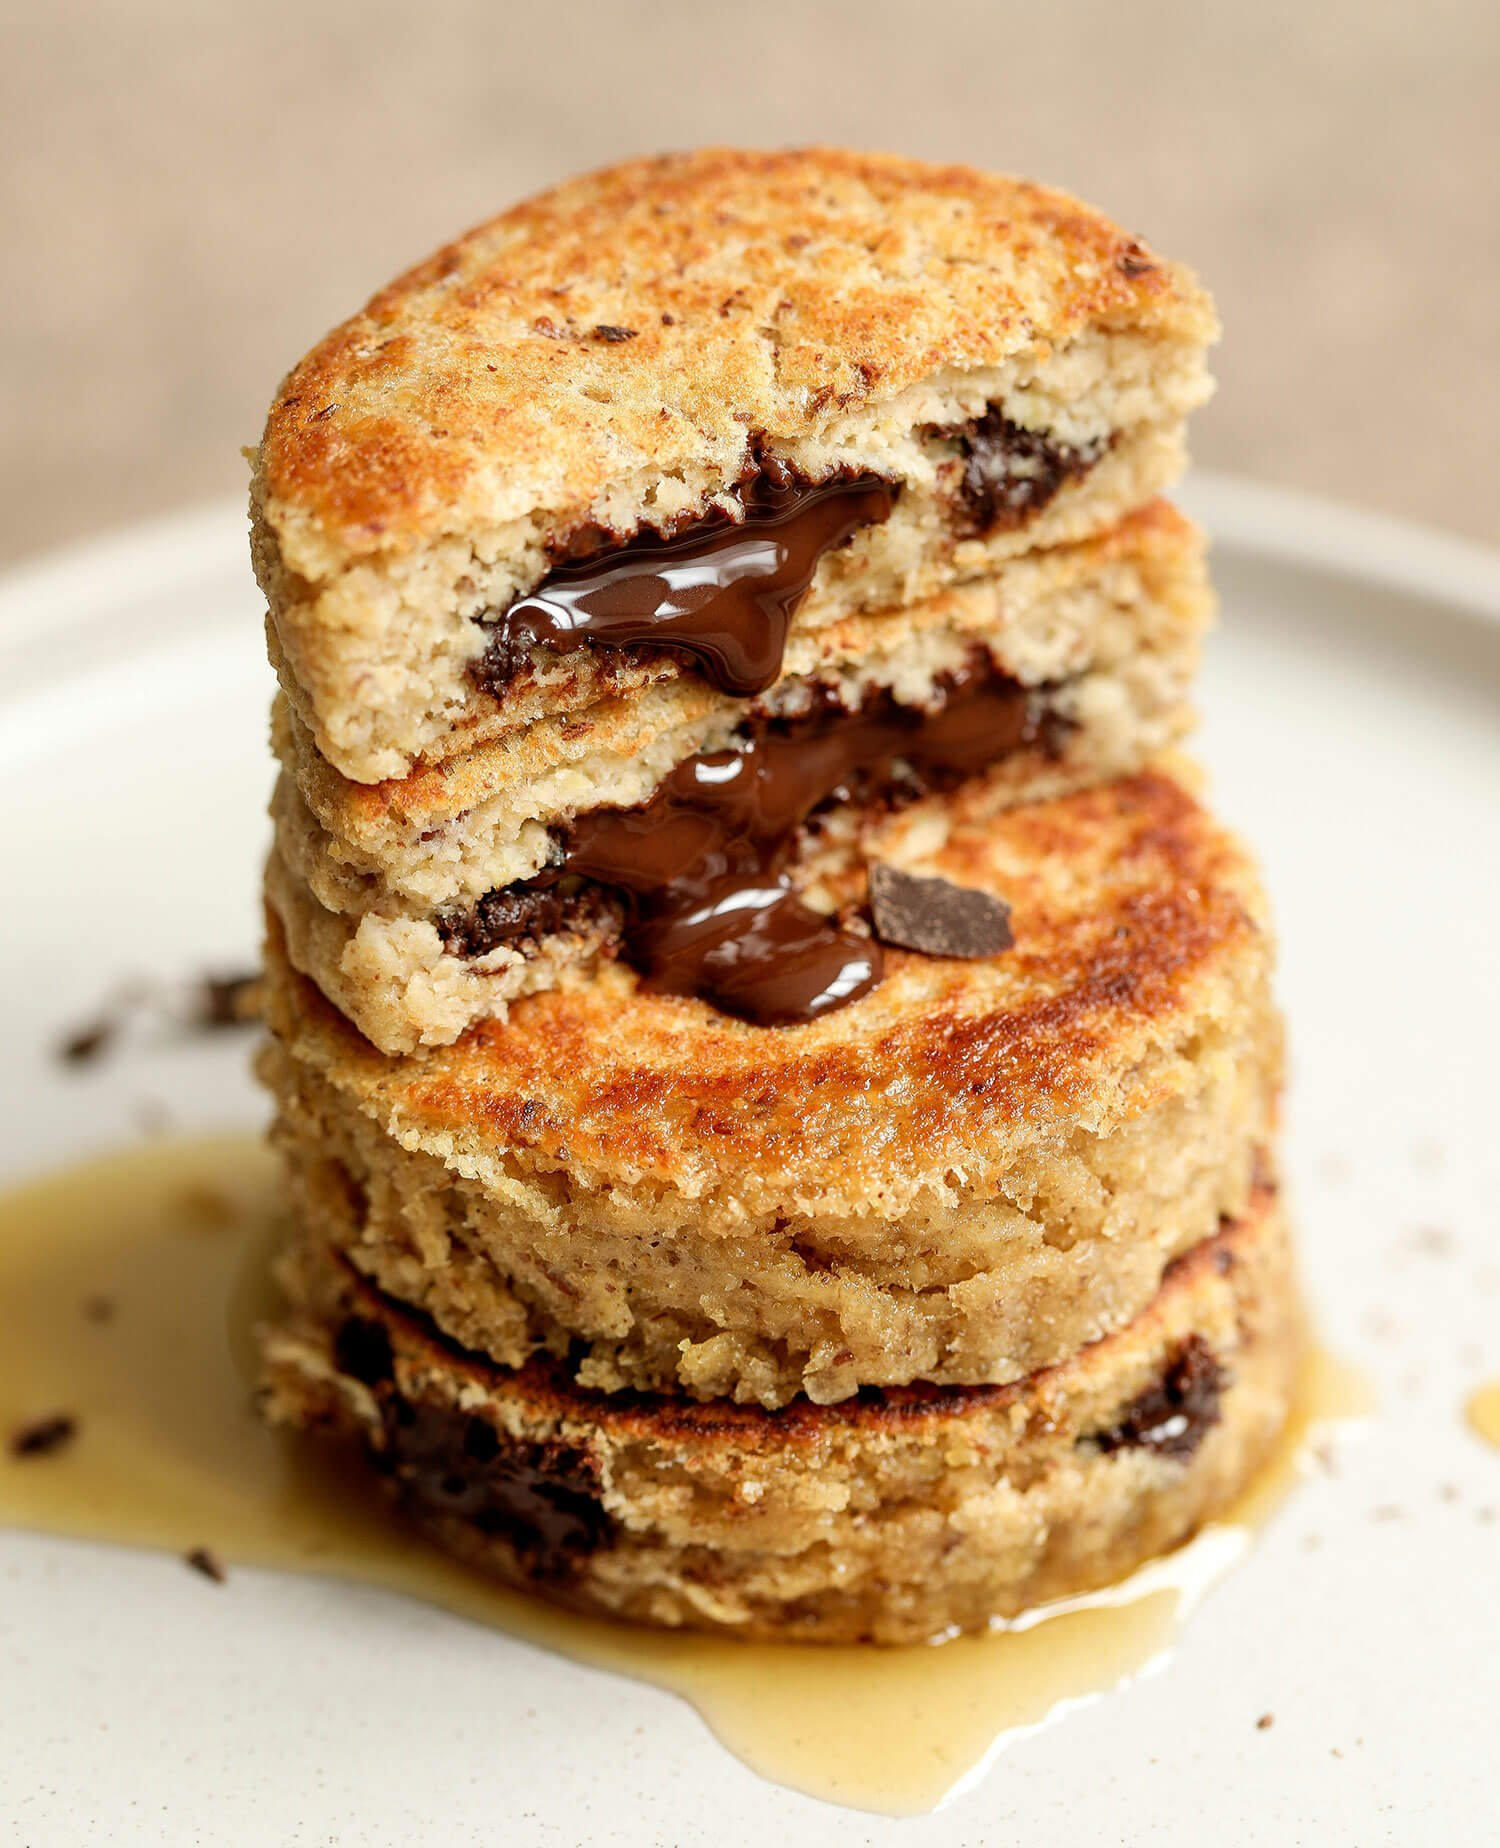 Vegan & Gluten-free Chocolate Stuffed Pancakes